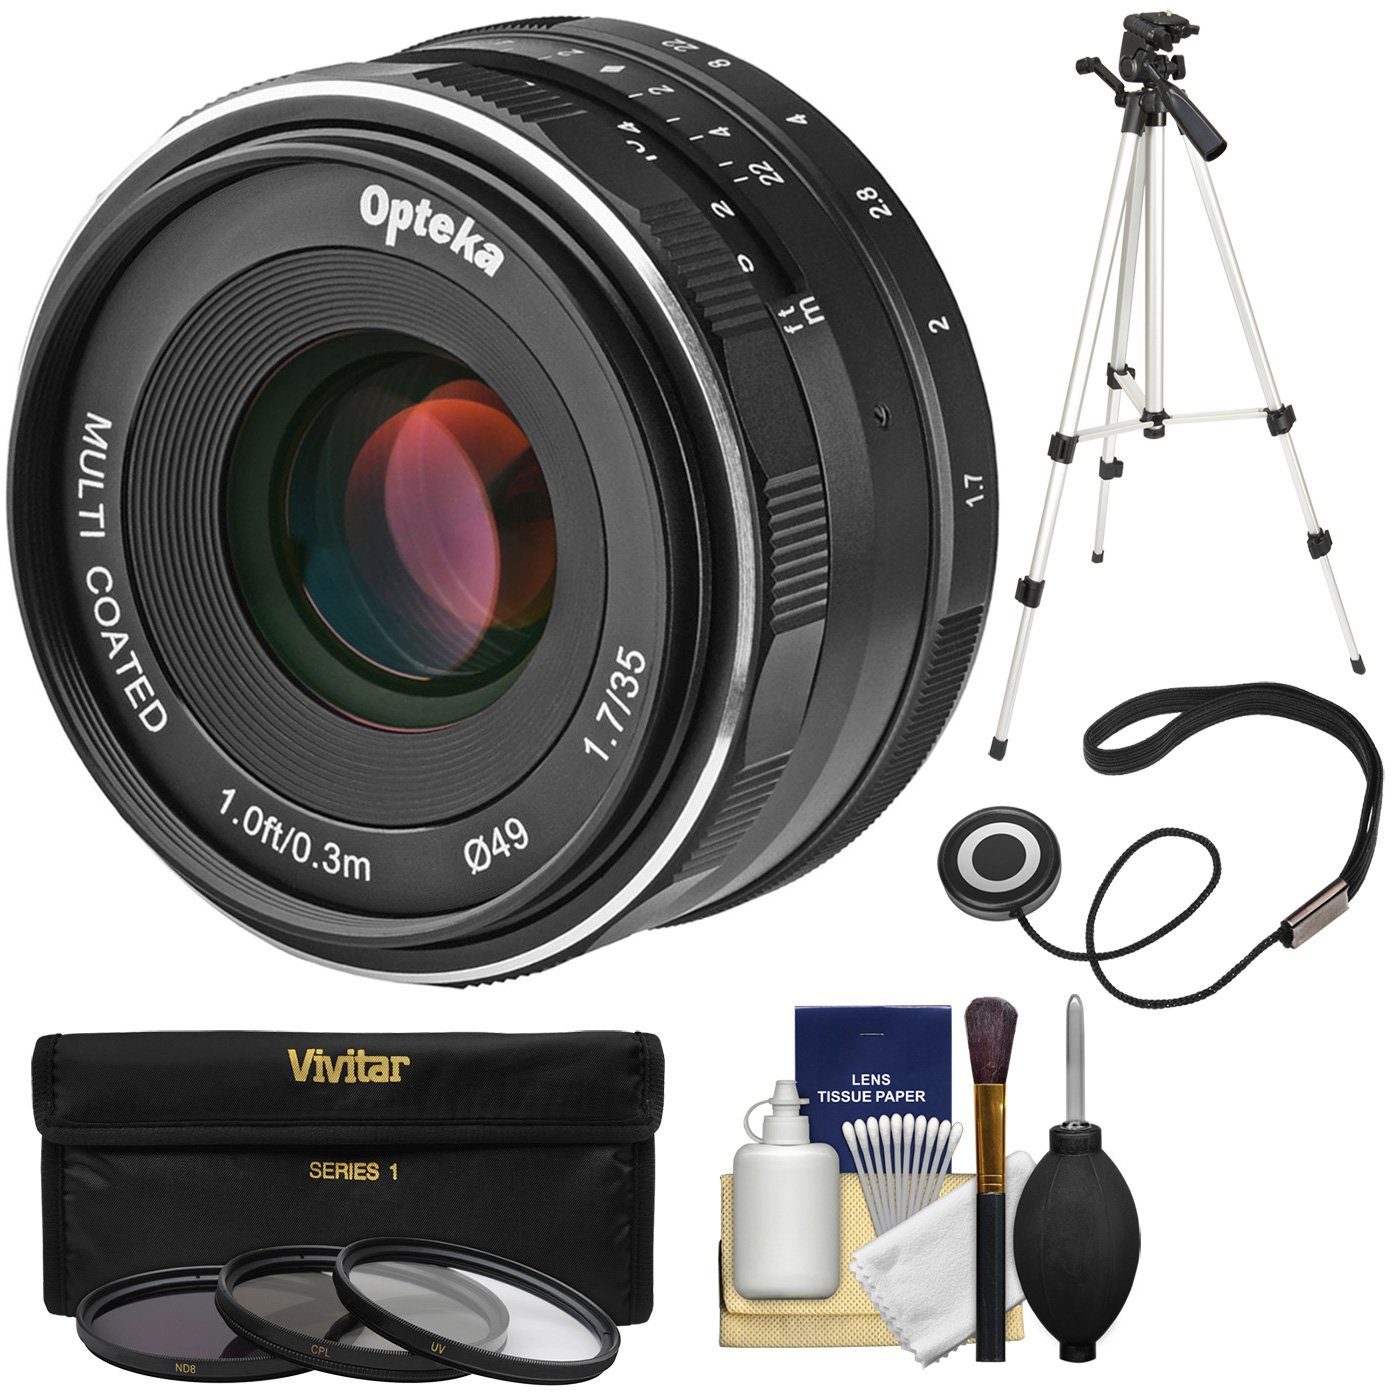 Opteka 35mm f/1.7 HD MF Prime Lens with 3 Filters + Tripod Kit for Olympus OM-D, Pen & Panasonic LUMIX Micro 4/3 Digital Cameras by Opteka (Image #1)